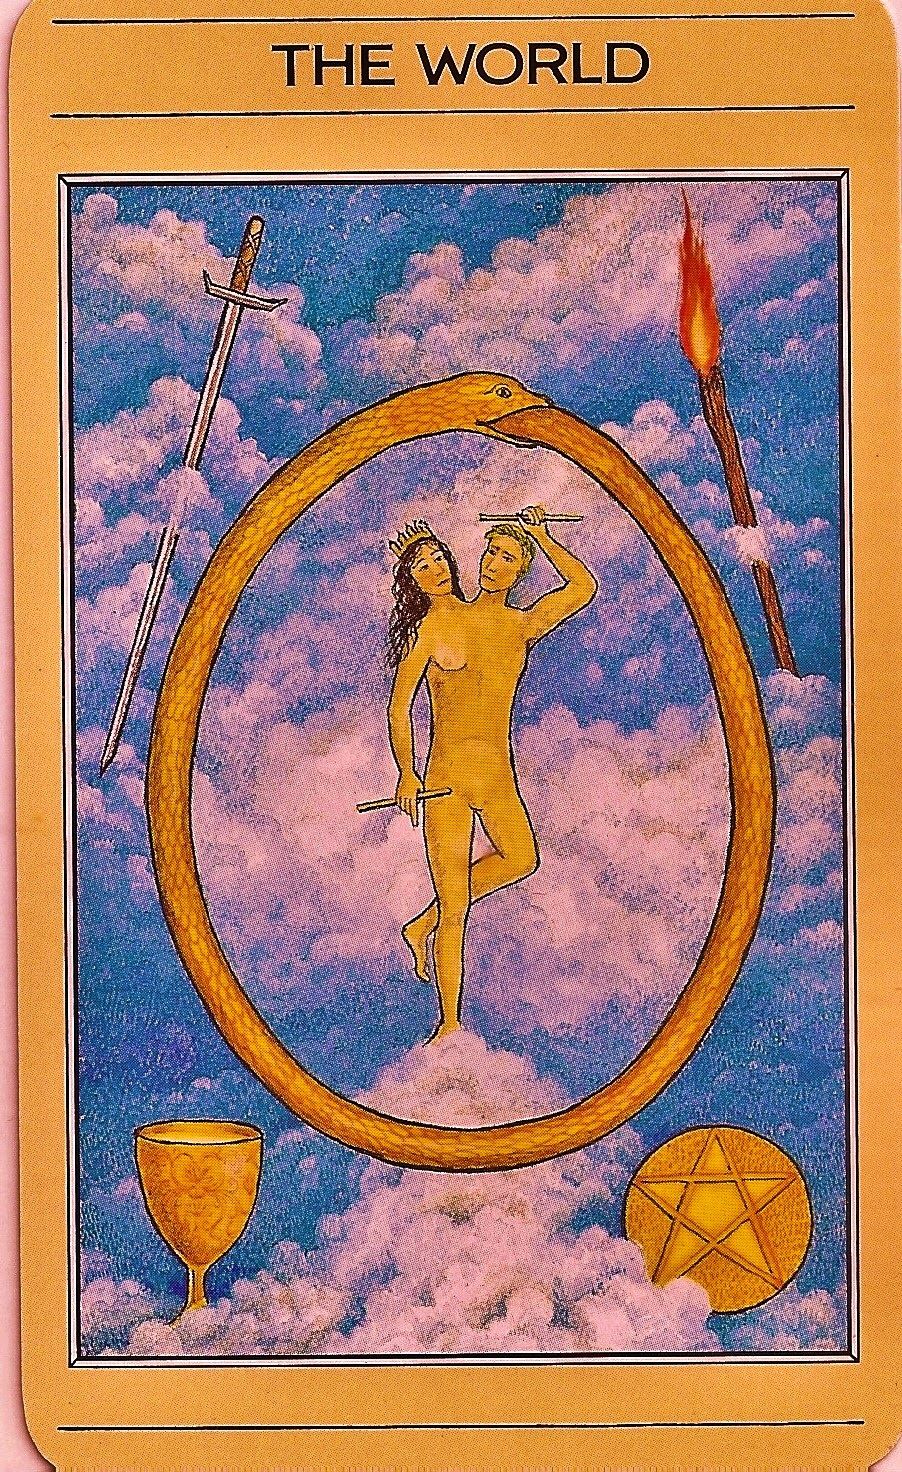 Tarot And More 2 Tarot Cards Symbolism: Tarot And More: 7) ARCHETYPES IN THE TAROT